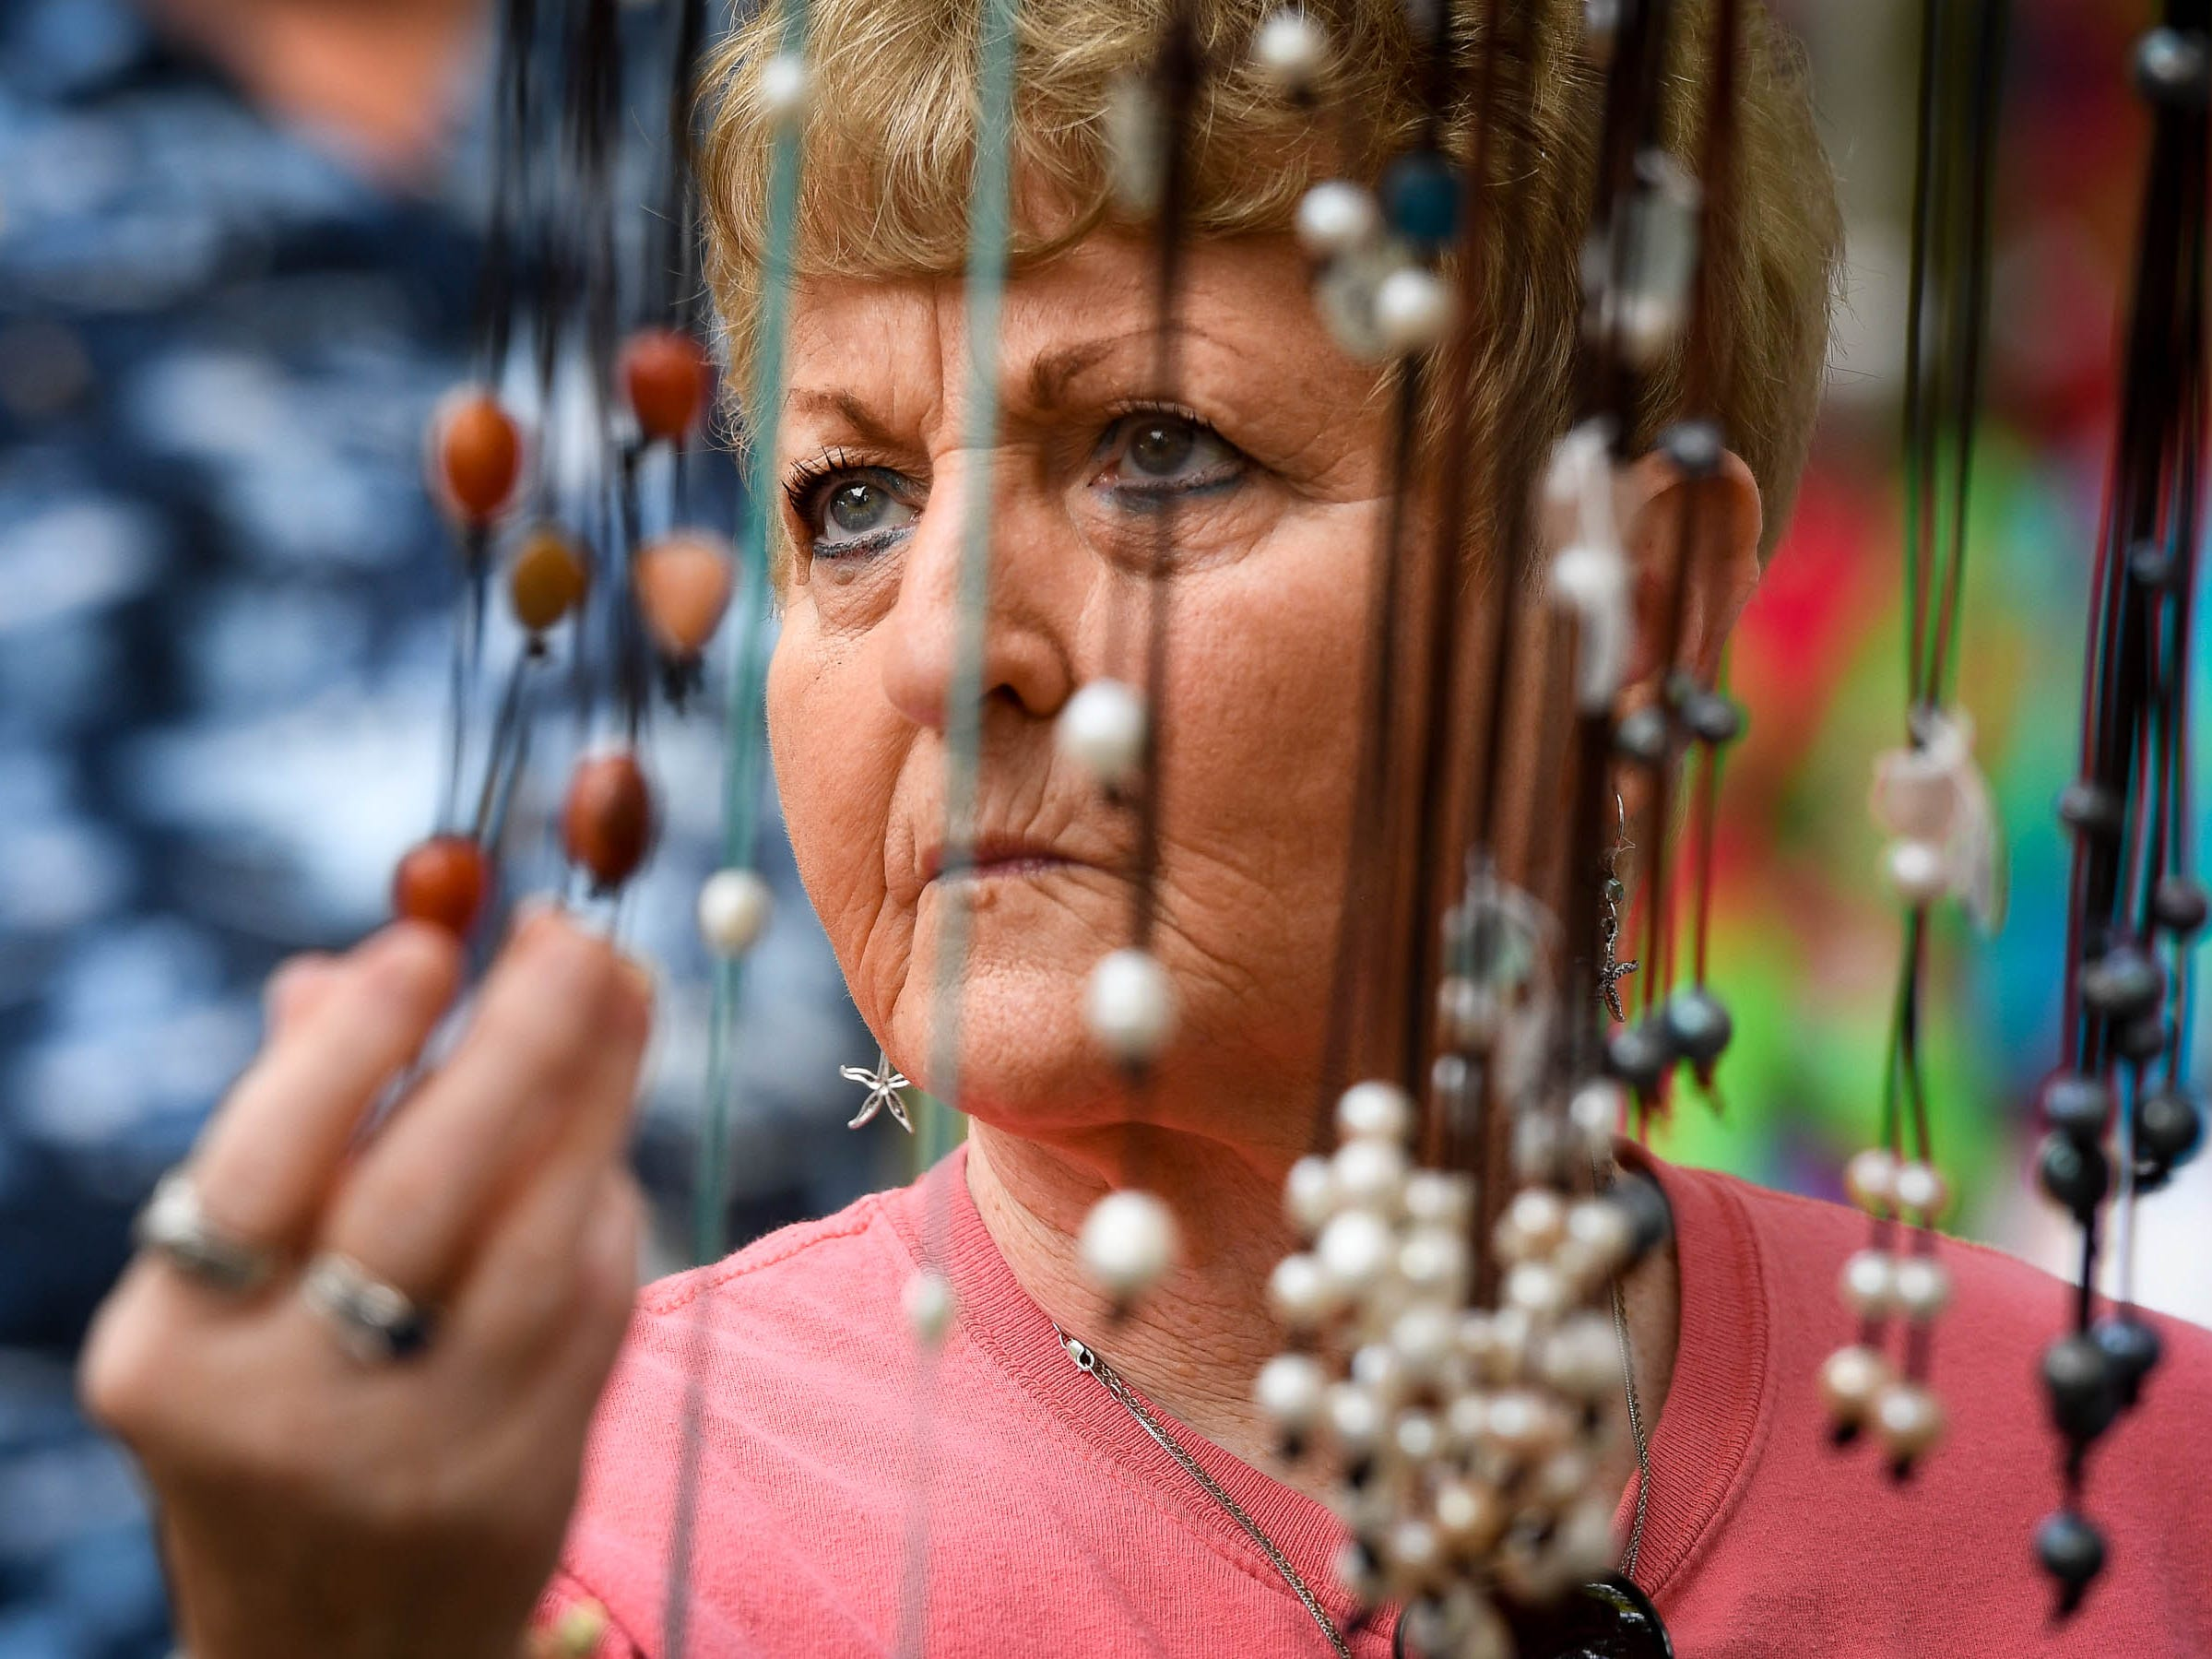 Linda Kimsey looks at necklaces as she browses the vendor booths at the Henderson Lions Arts and Crafts festival held at Audubon State Park Saturday, October 6, 2018.